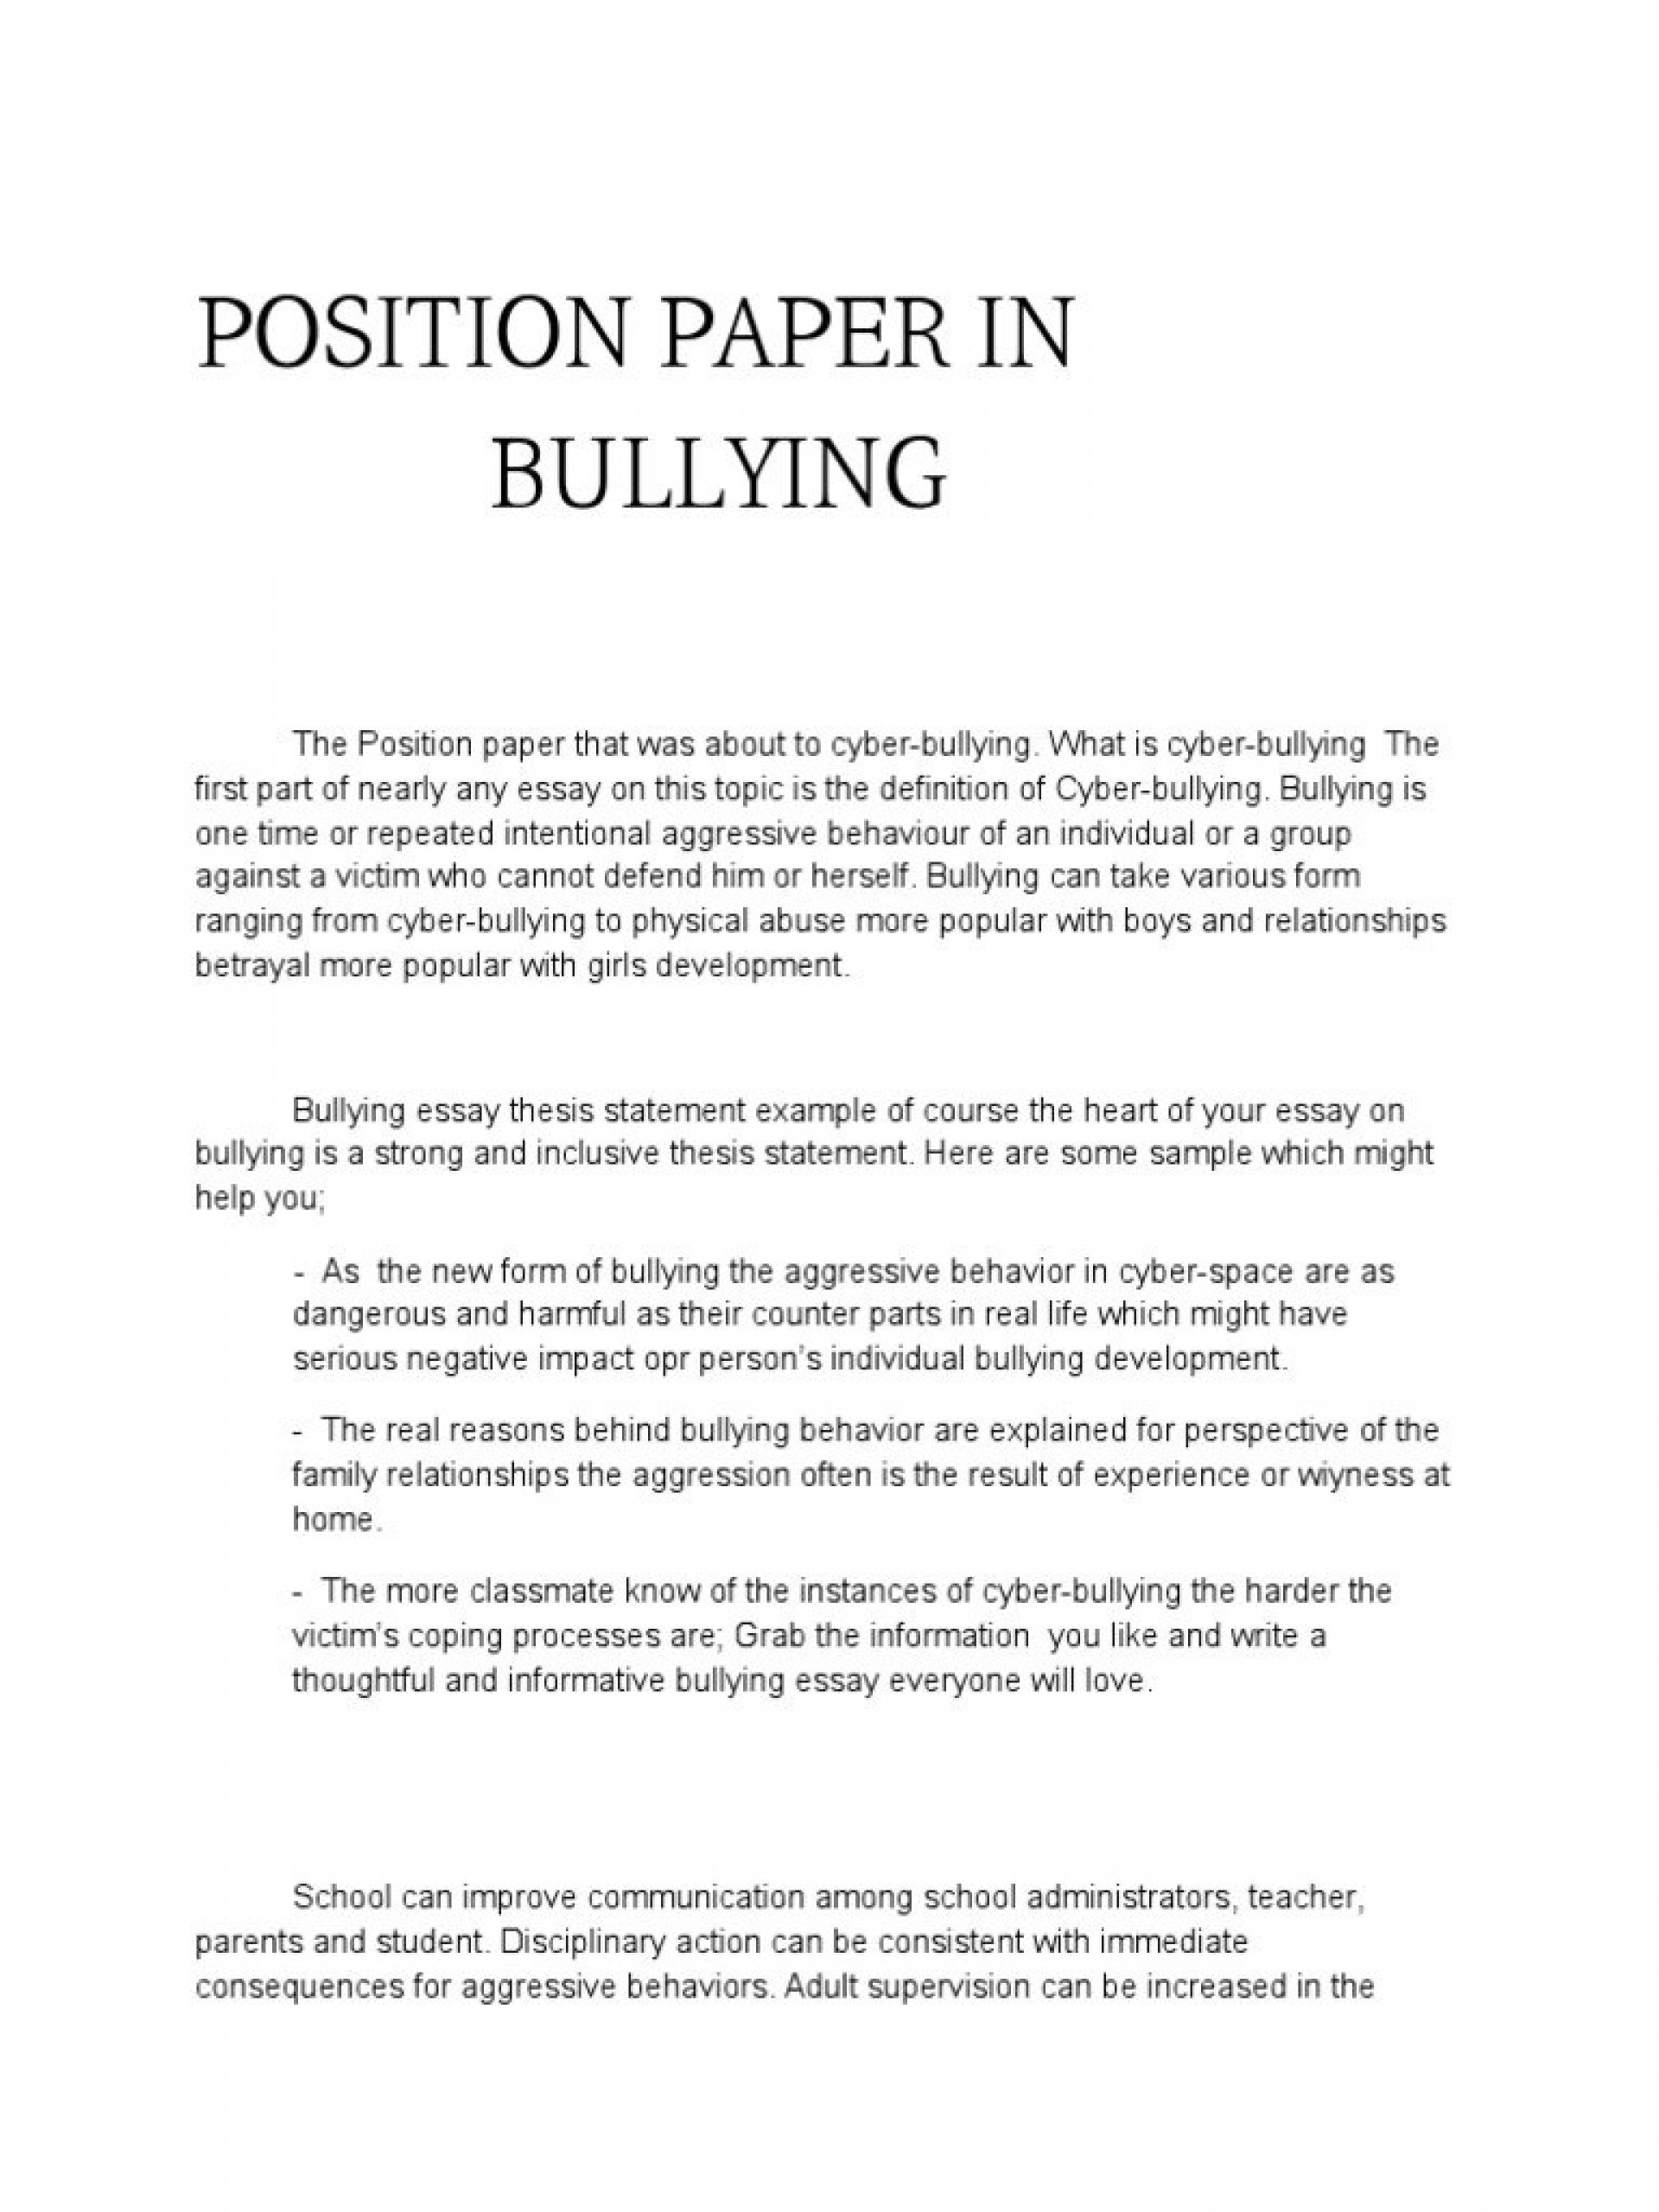 005 Bullying Essay Example Good Conclusion For Academic Writing Service Cause And Effect On In Awful Persuasive Ideas Argumentative Thesis 1920